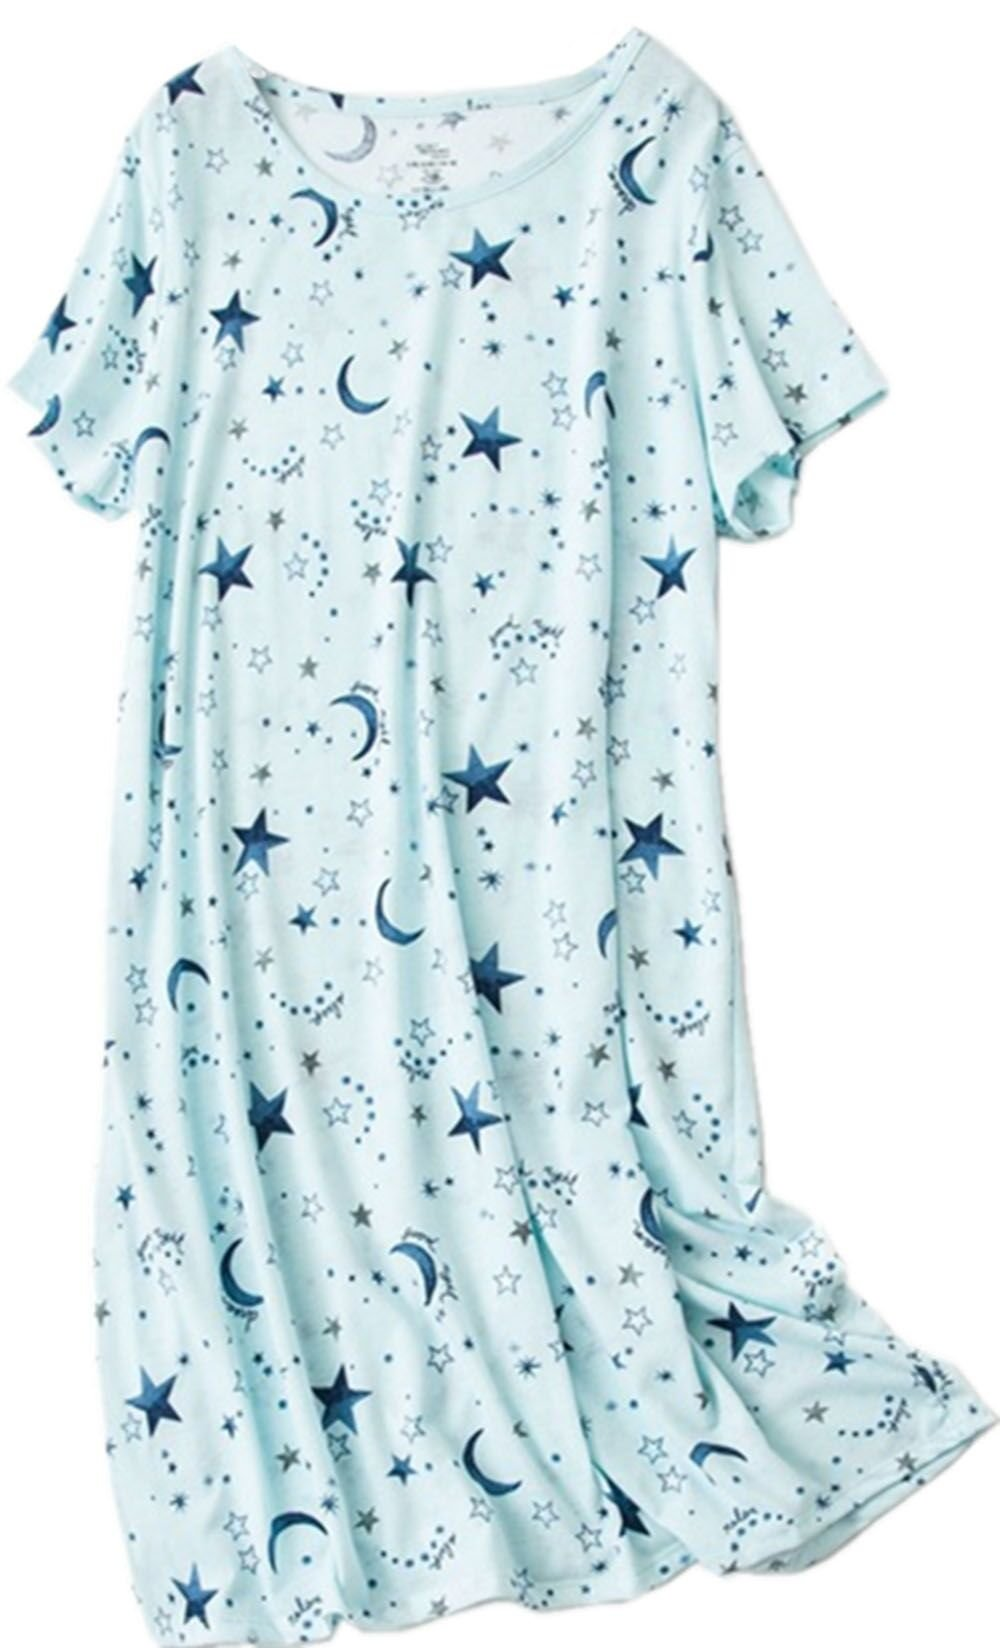 Amoy-Baby Women's Cotton Blend Green Floral Nightgown Casual Nights XTSY001-Blue Star-L